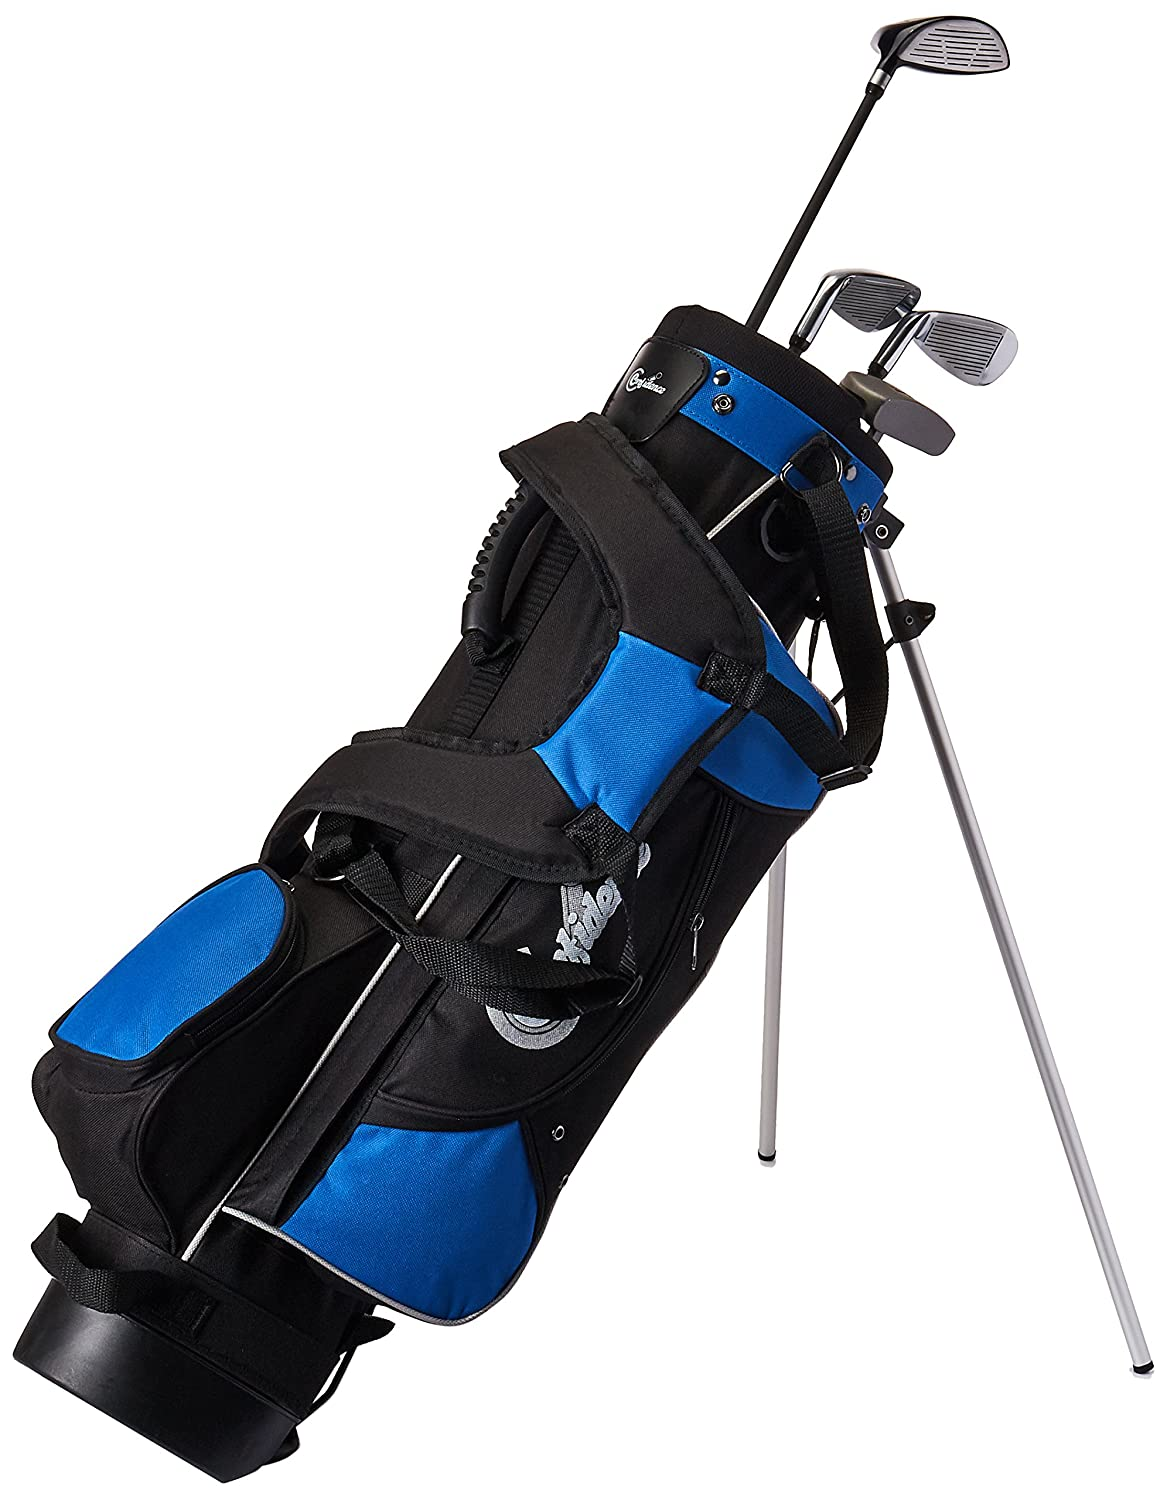 Confidence Junior Golf Club Set with Stand Bag Image